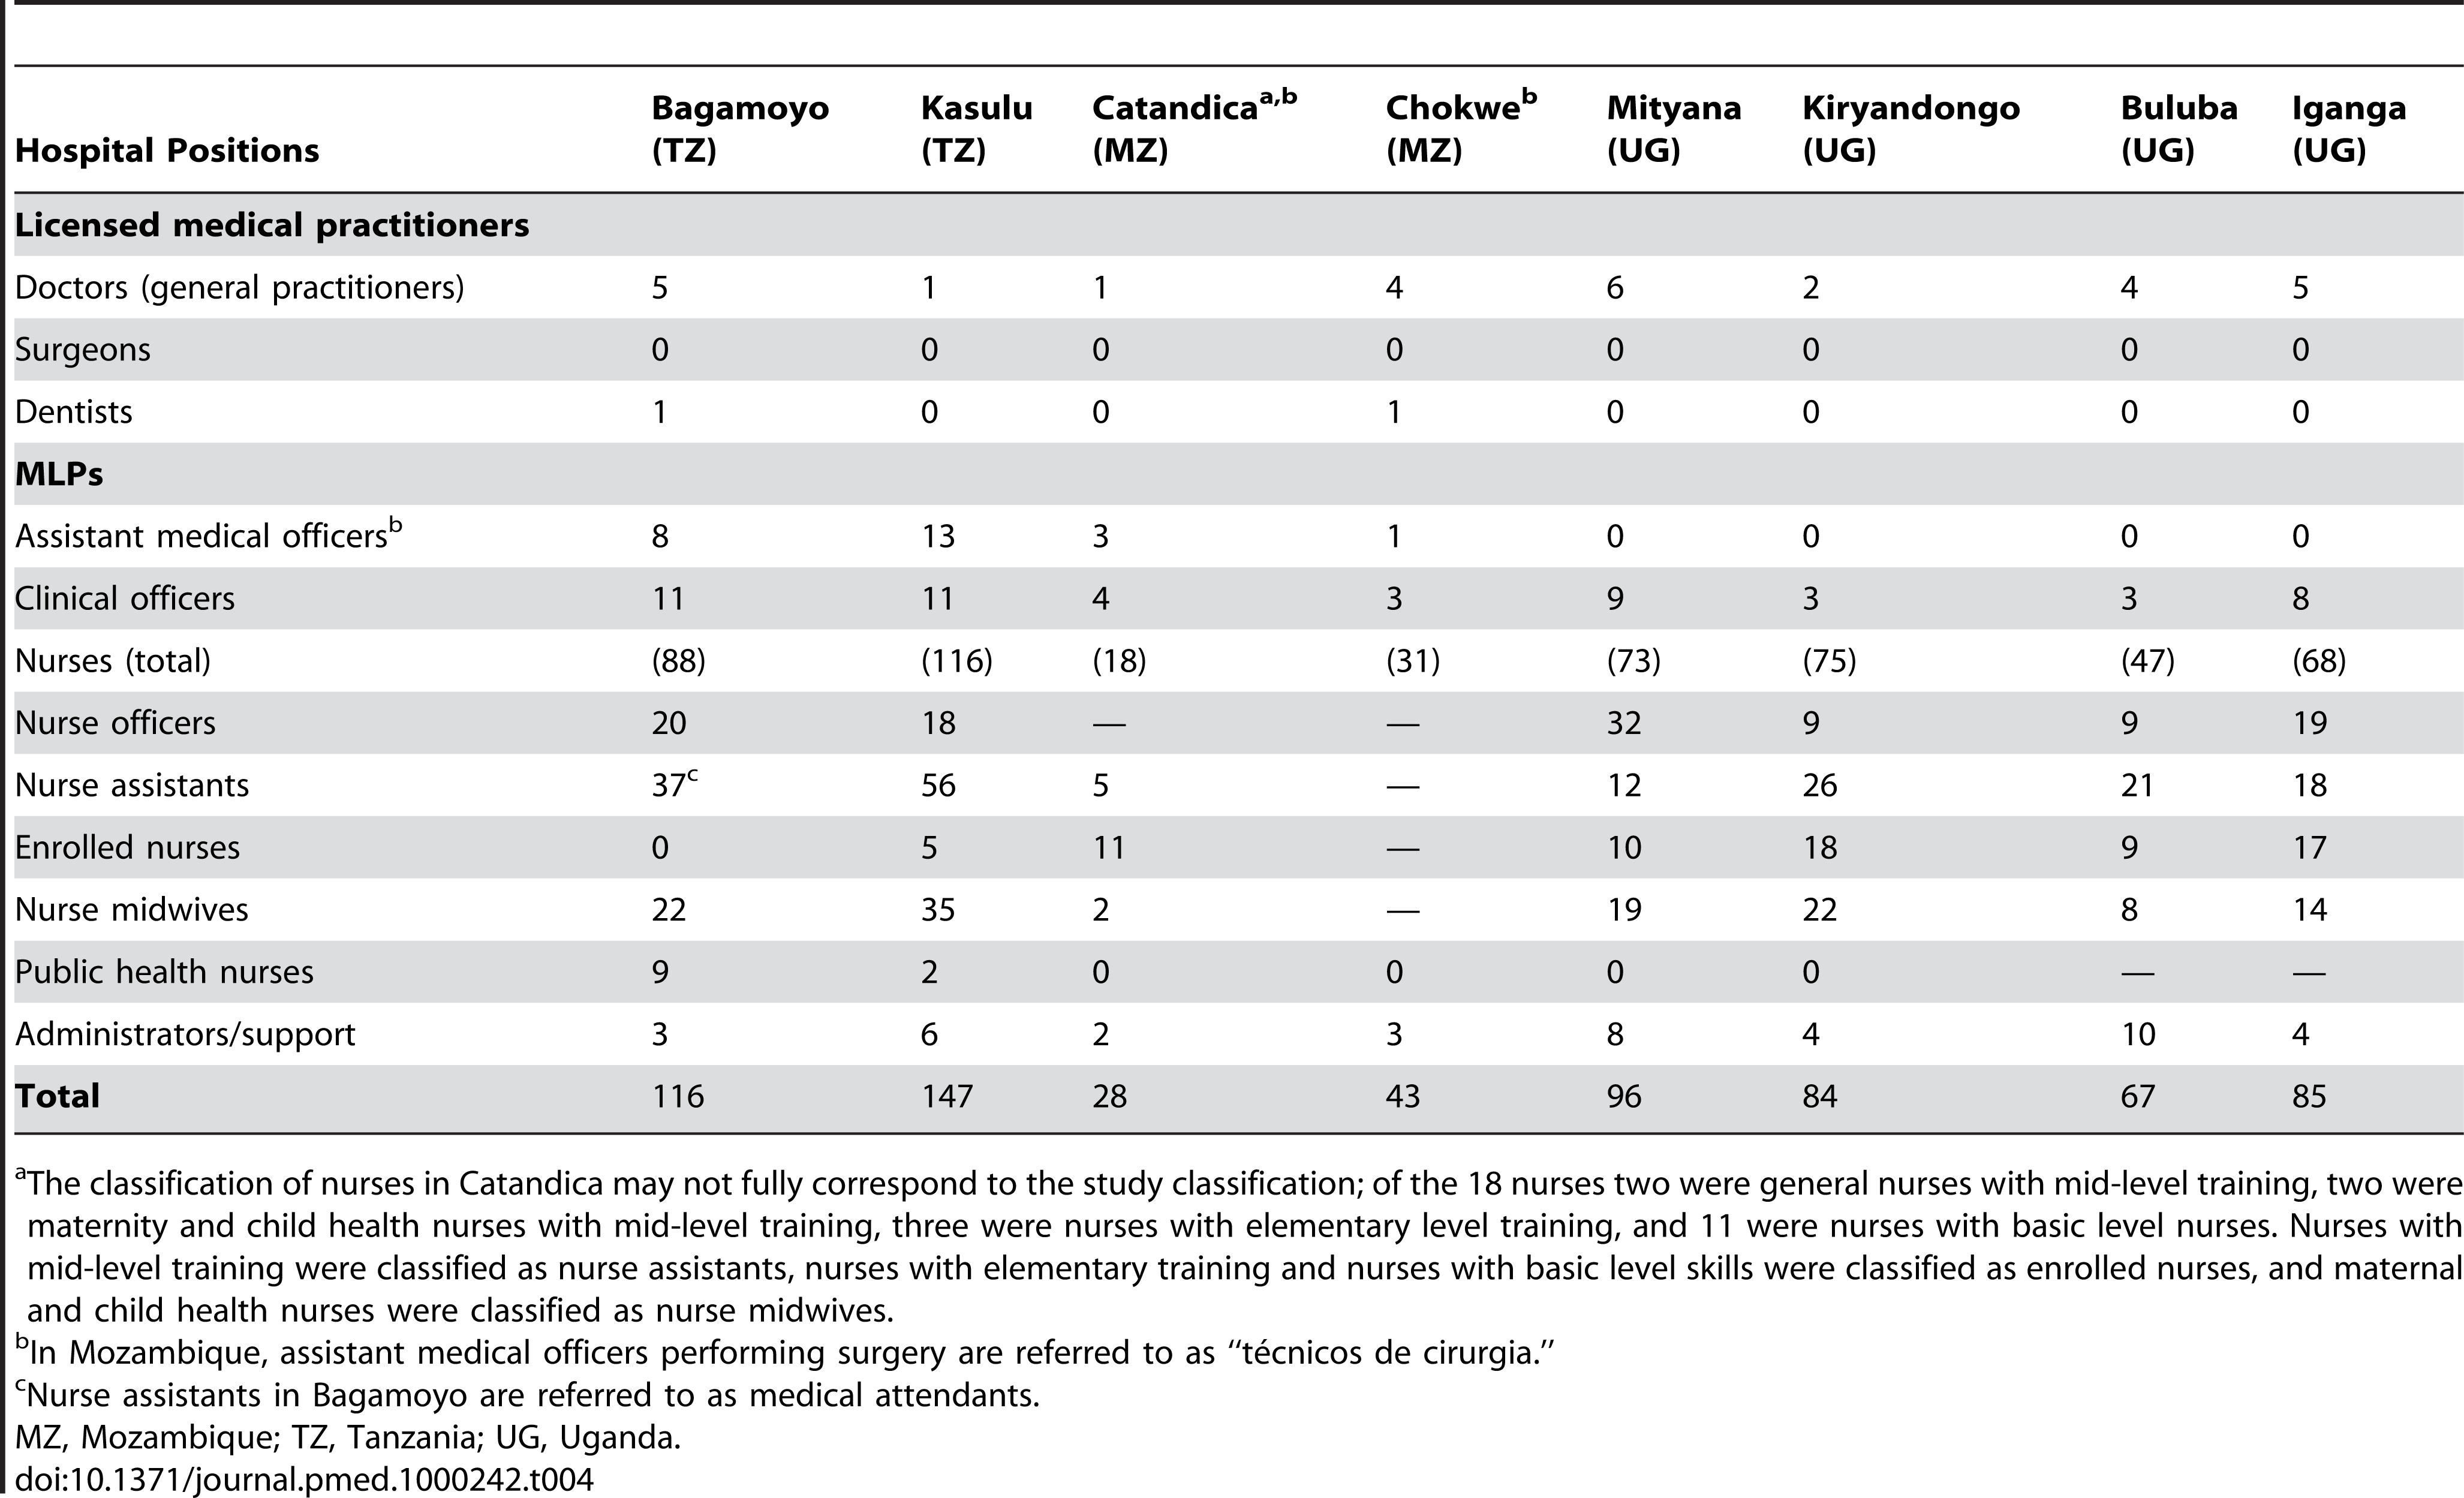 Human resources distribution in study hospitals.